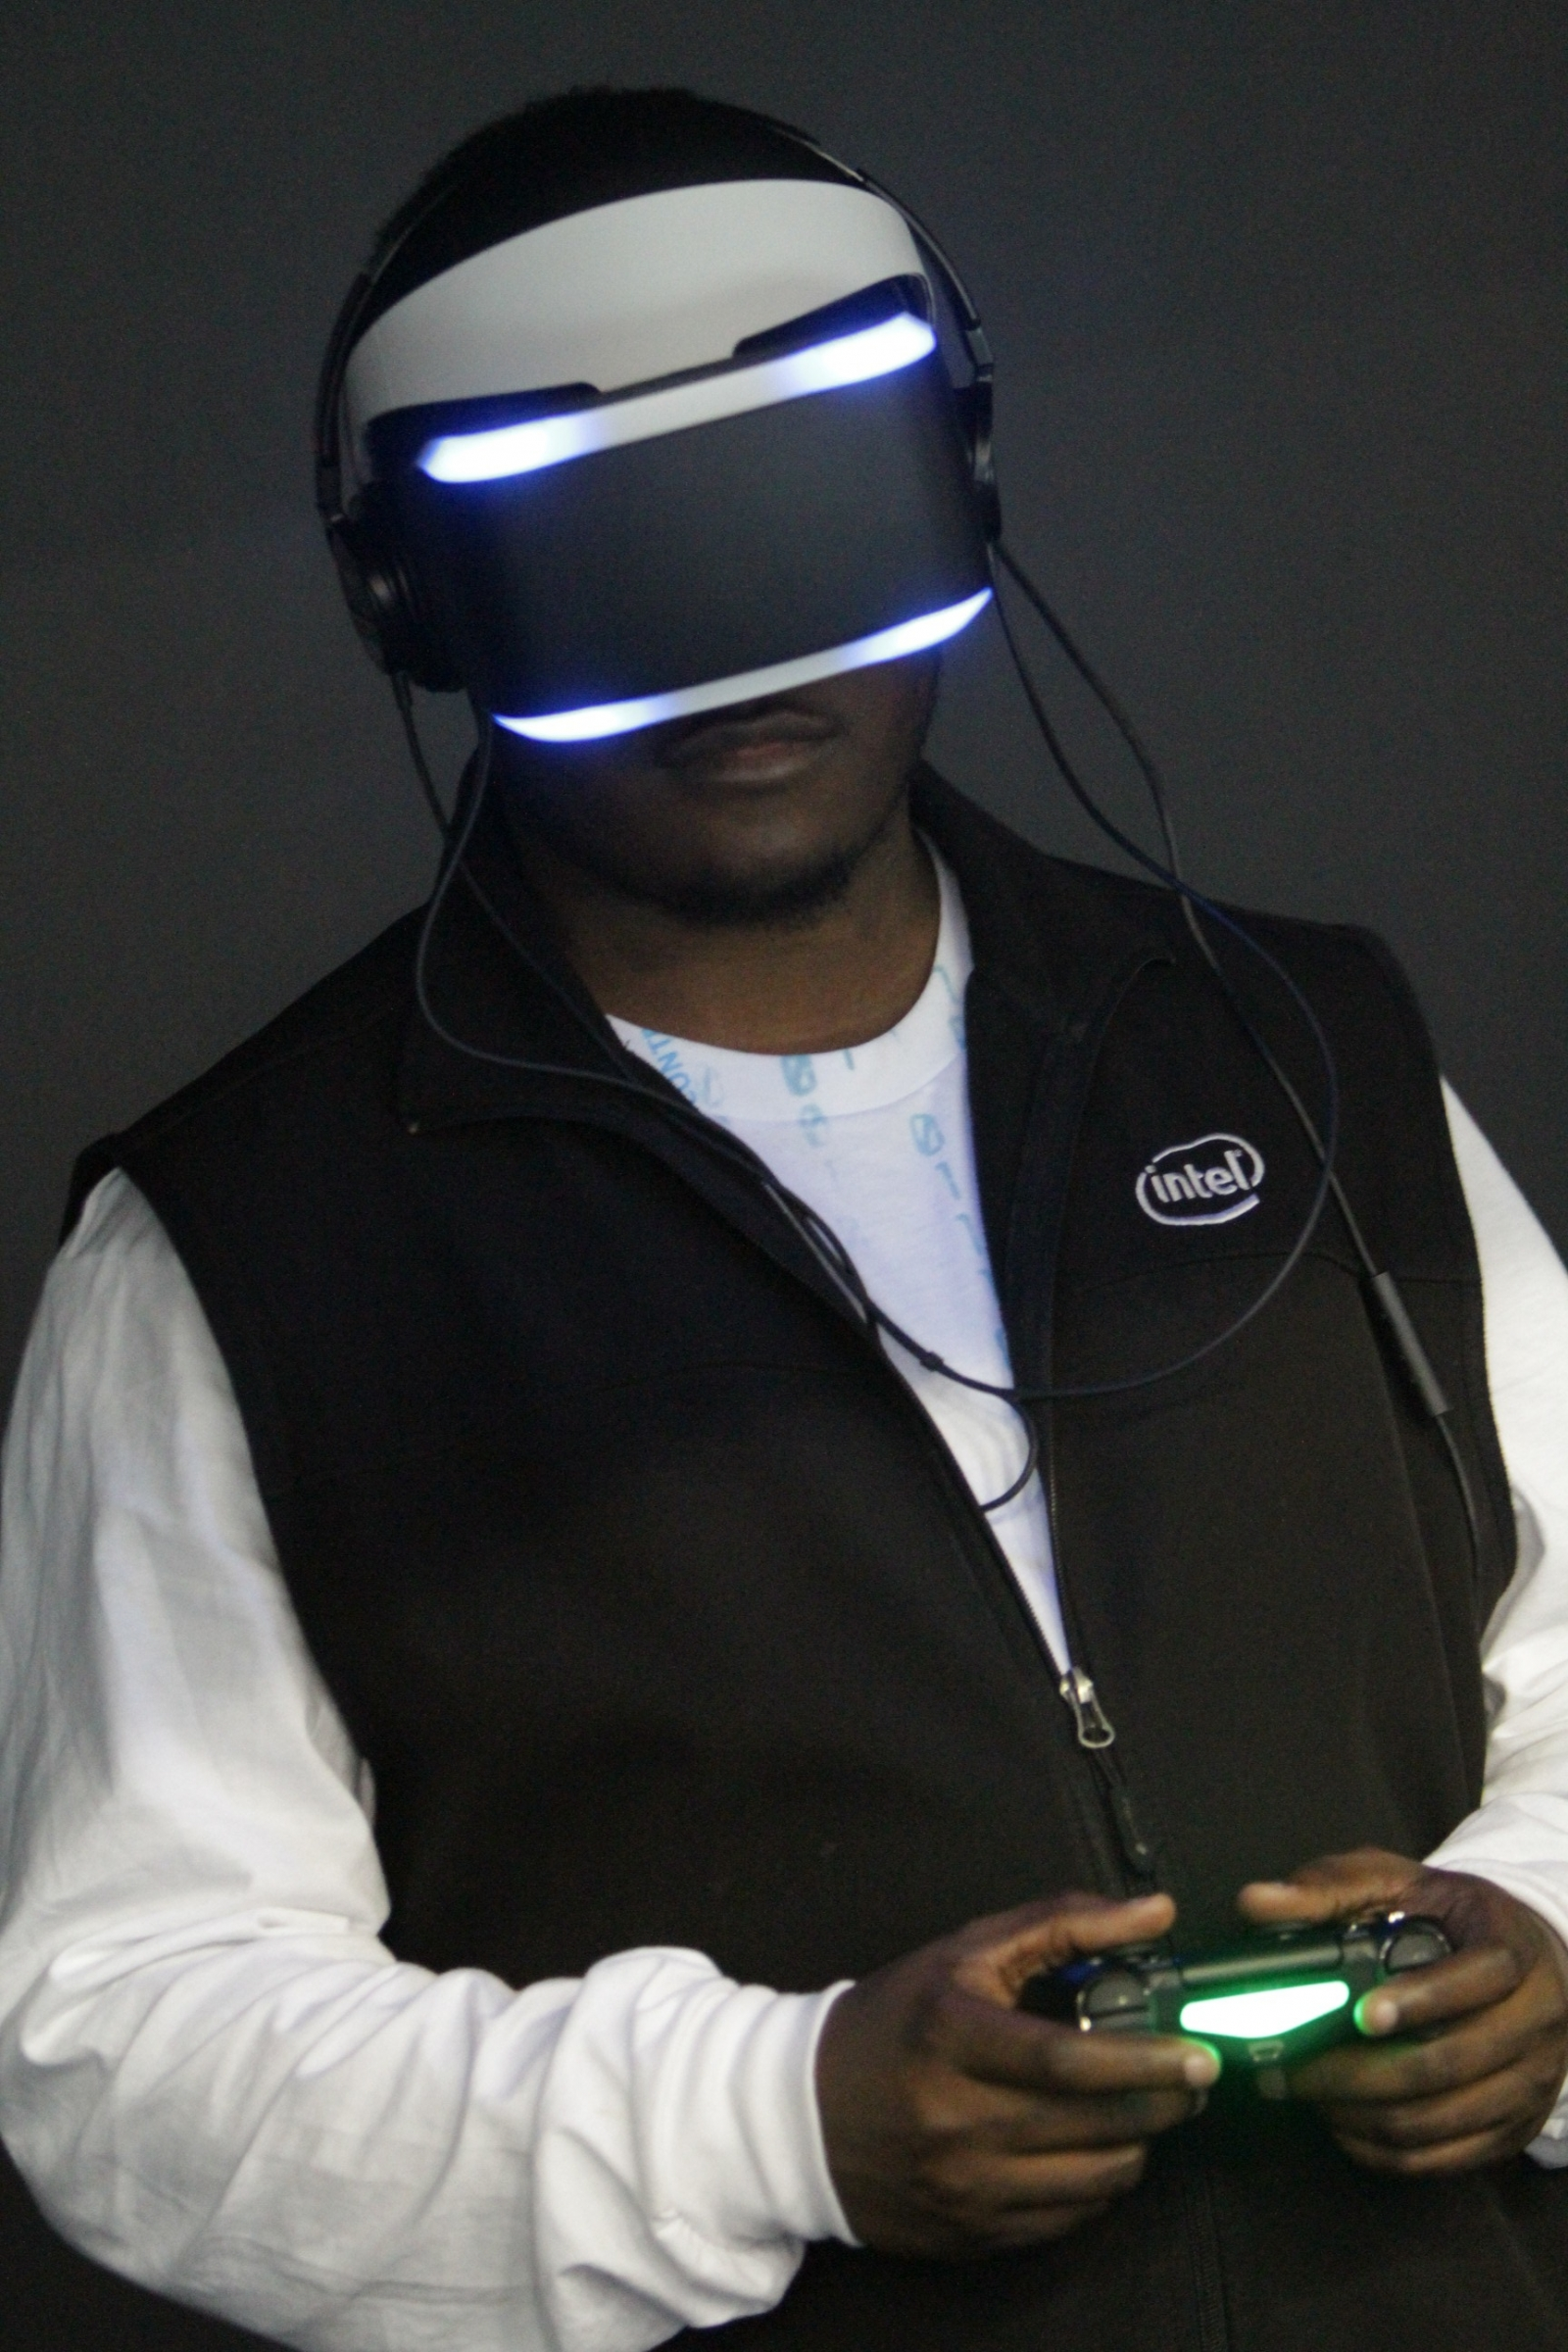 Sony Project Morpheus at GDC 2014